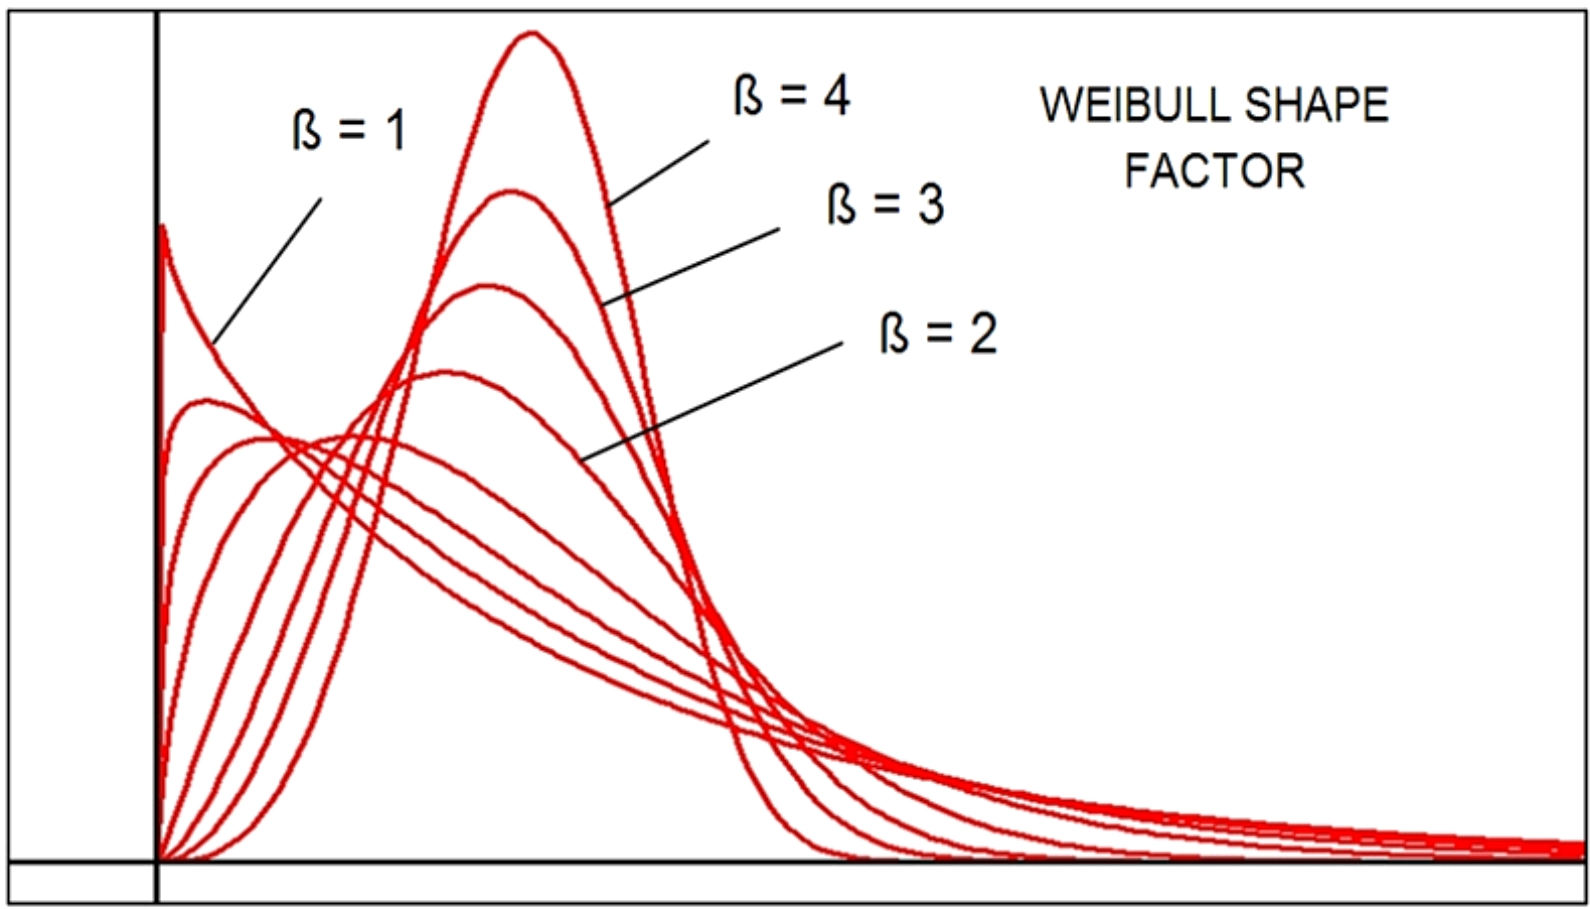 Reliability Software Weibull Distribution Test Design